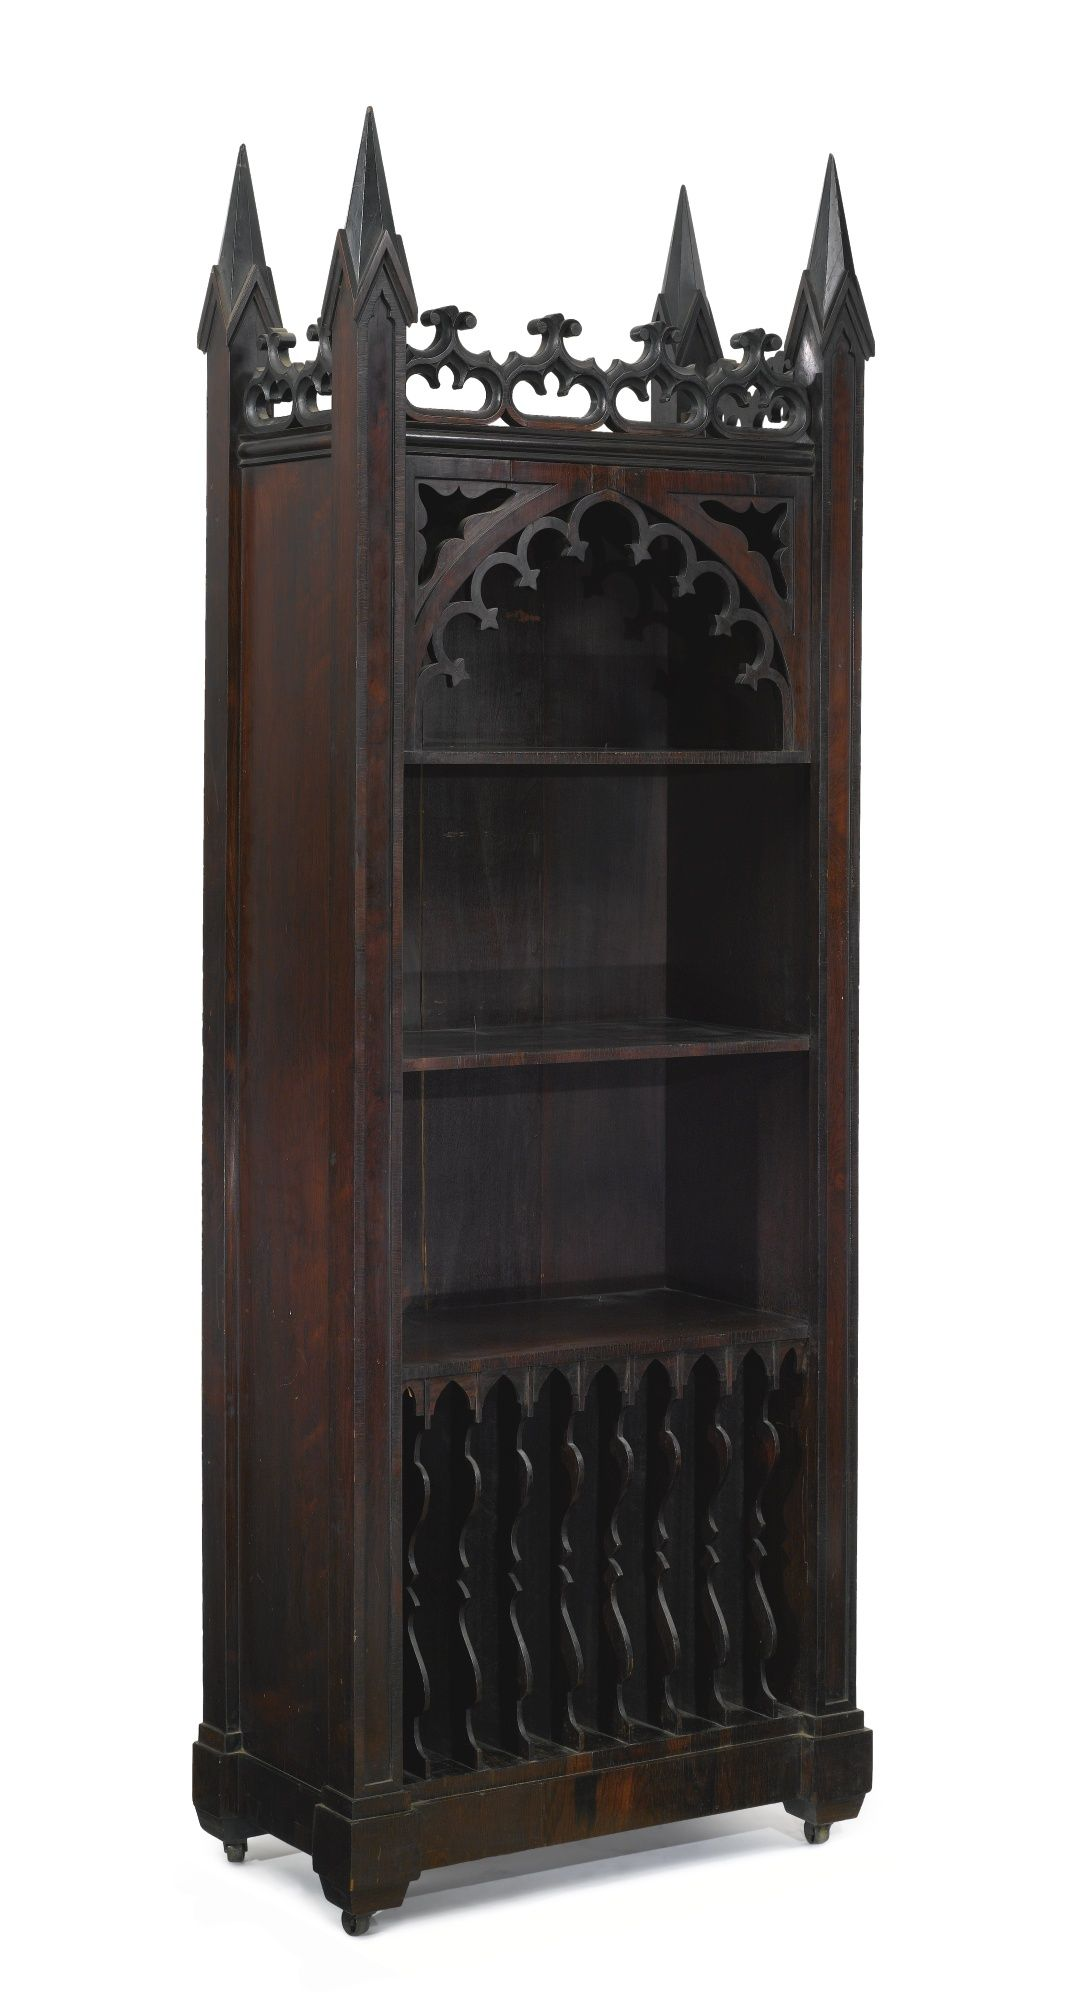 Pinterest Magicandcats A Gothic Revival Carved Rosewood Music Cabinet New York Circa 1860 1880 With Images Gothic Bedroom Gothic Interior Gothic Room